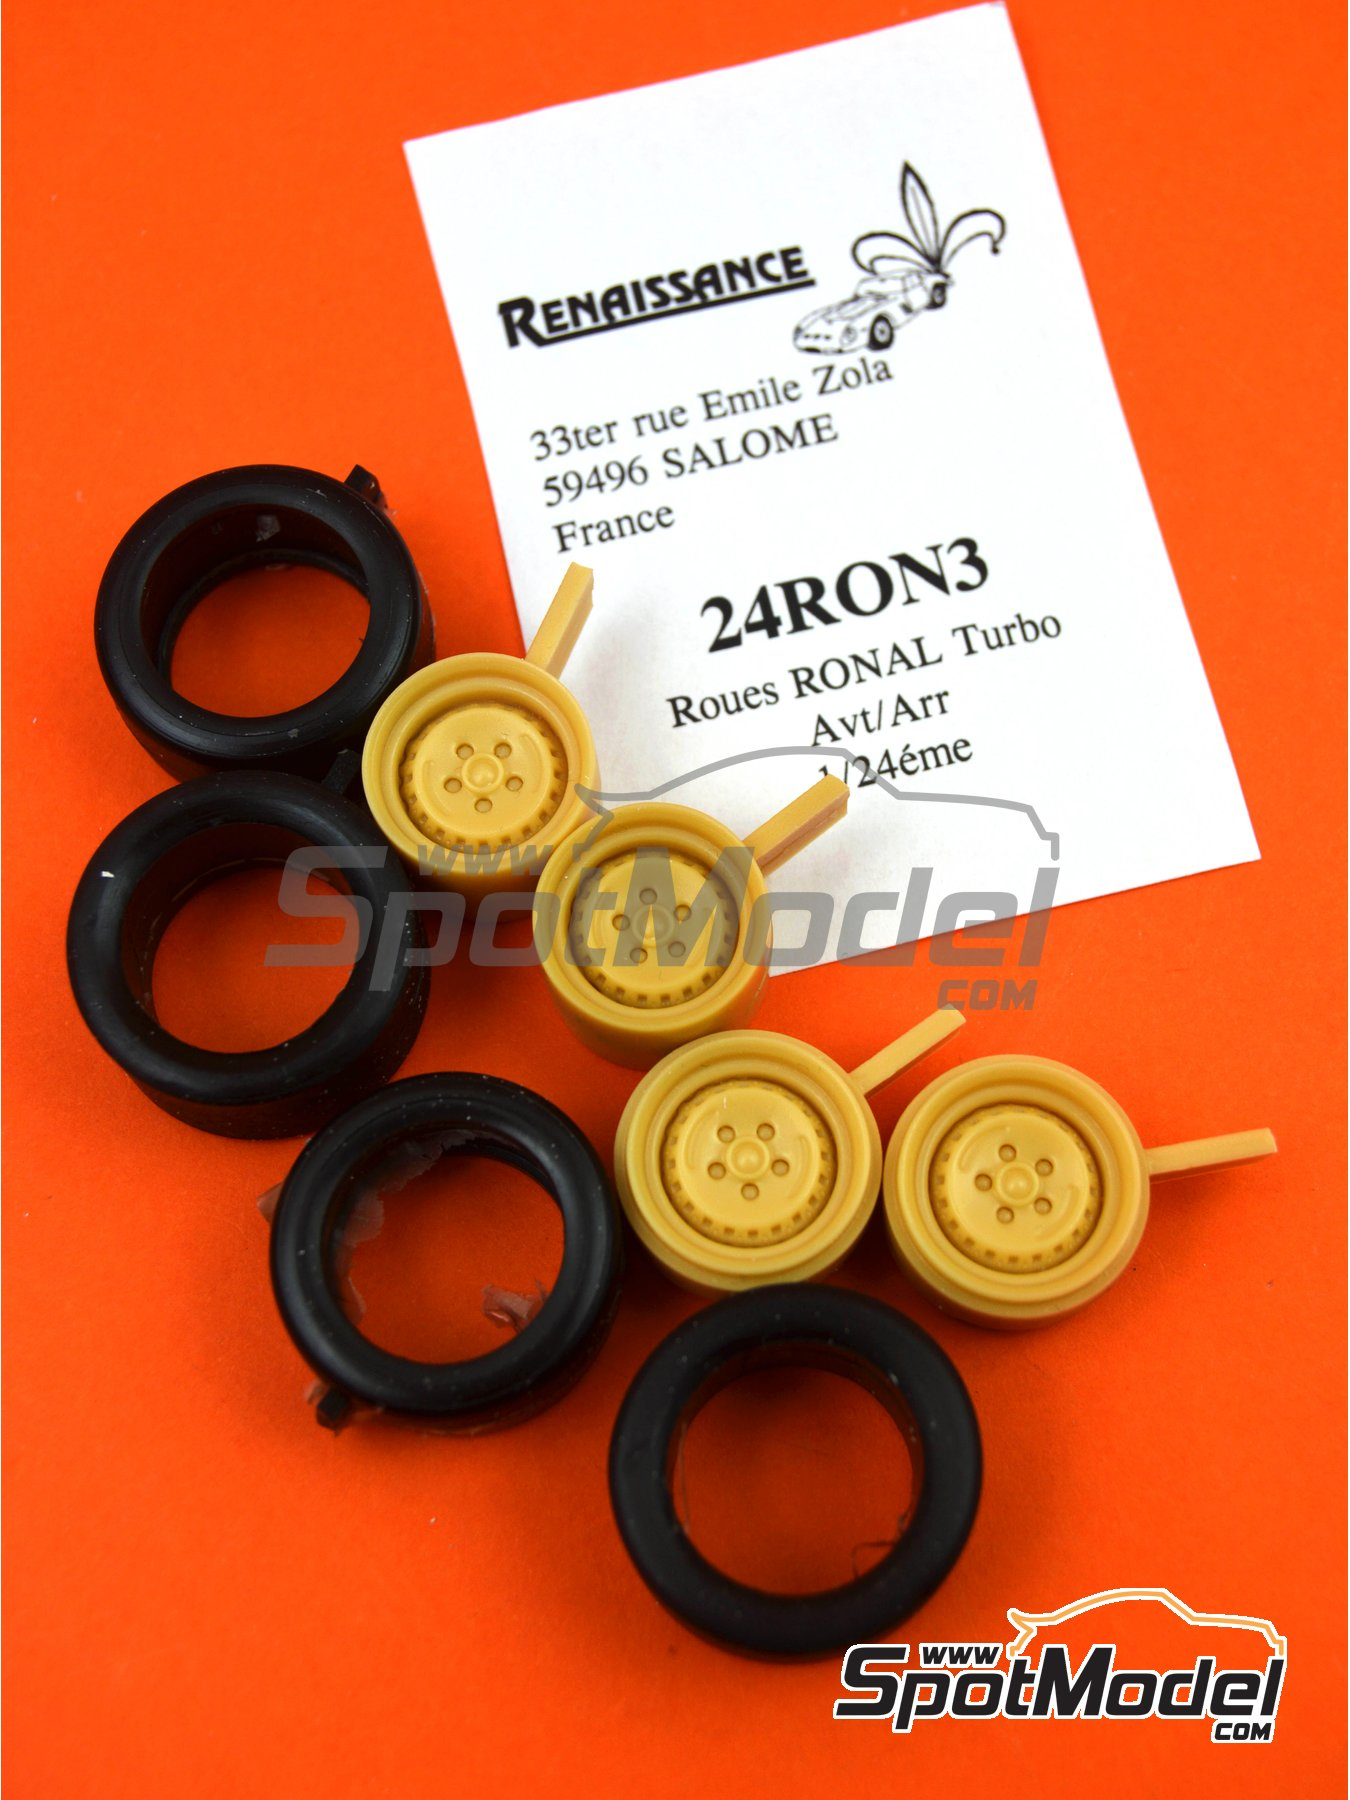 Ronal Turbo with slicks | Rims and tyres set in 1/24 scale manufactured by Renaissance Models (ref. 24RON3) image